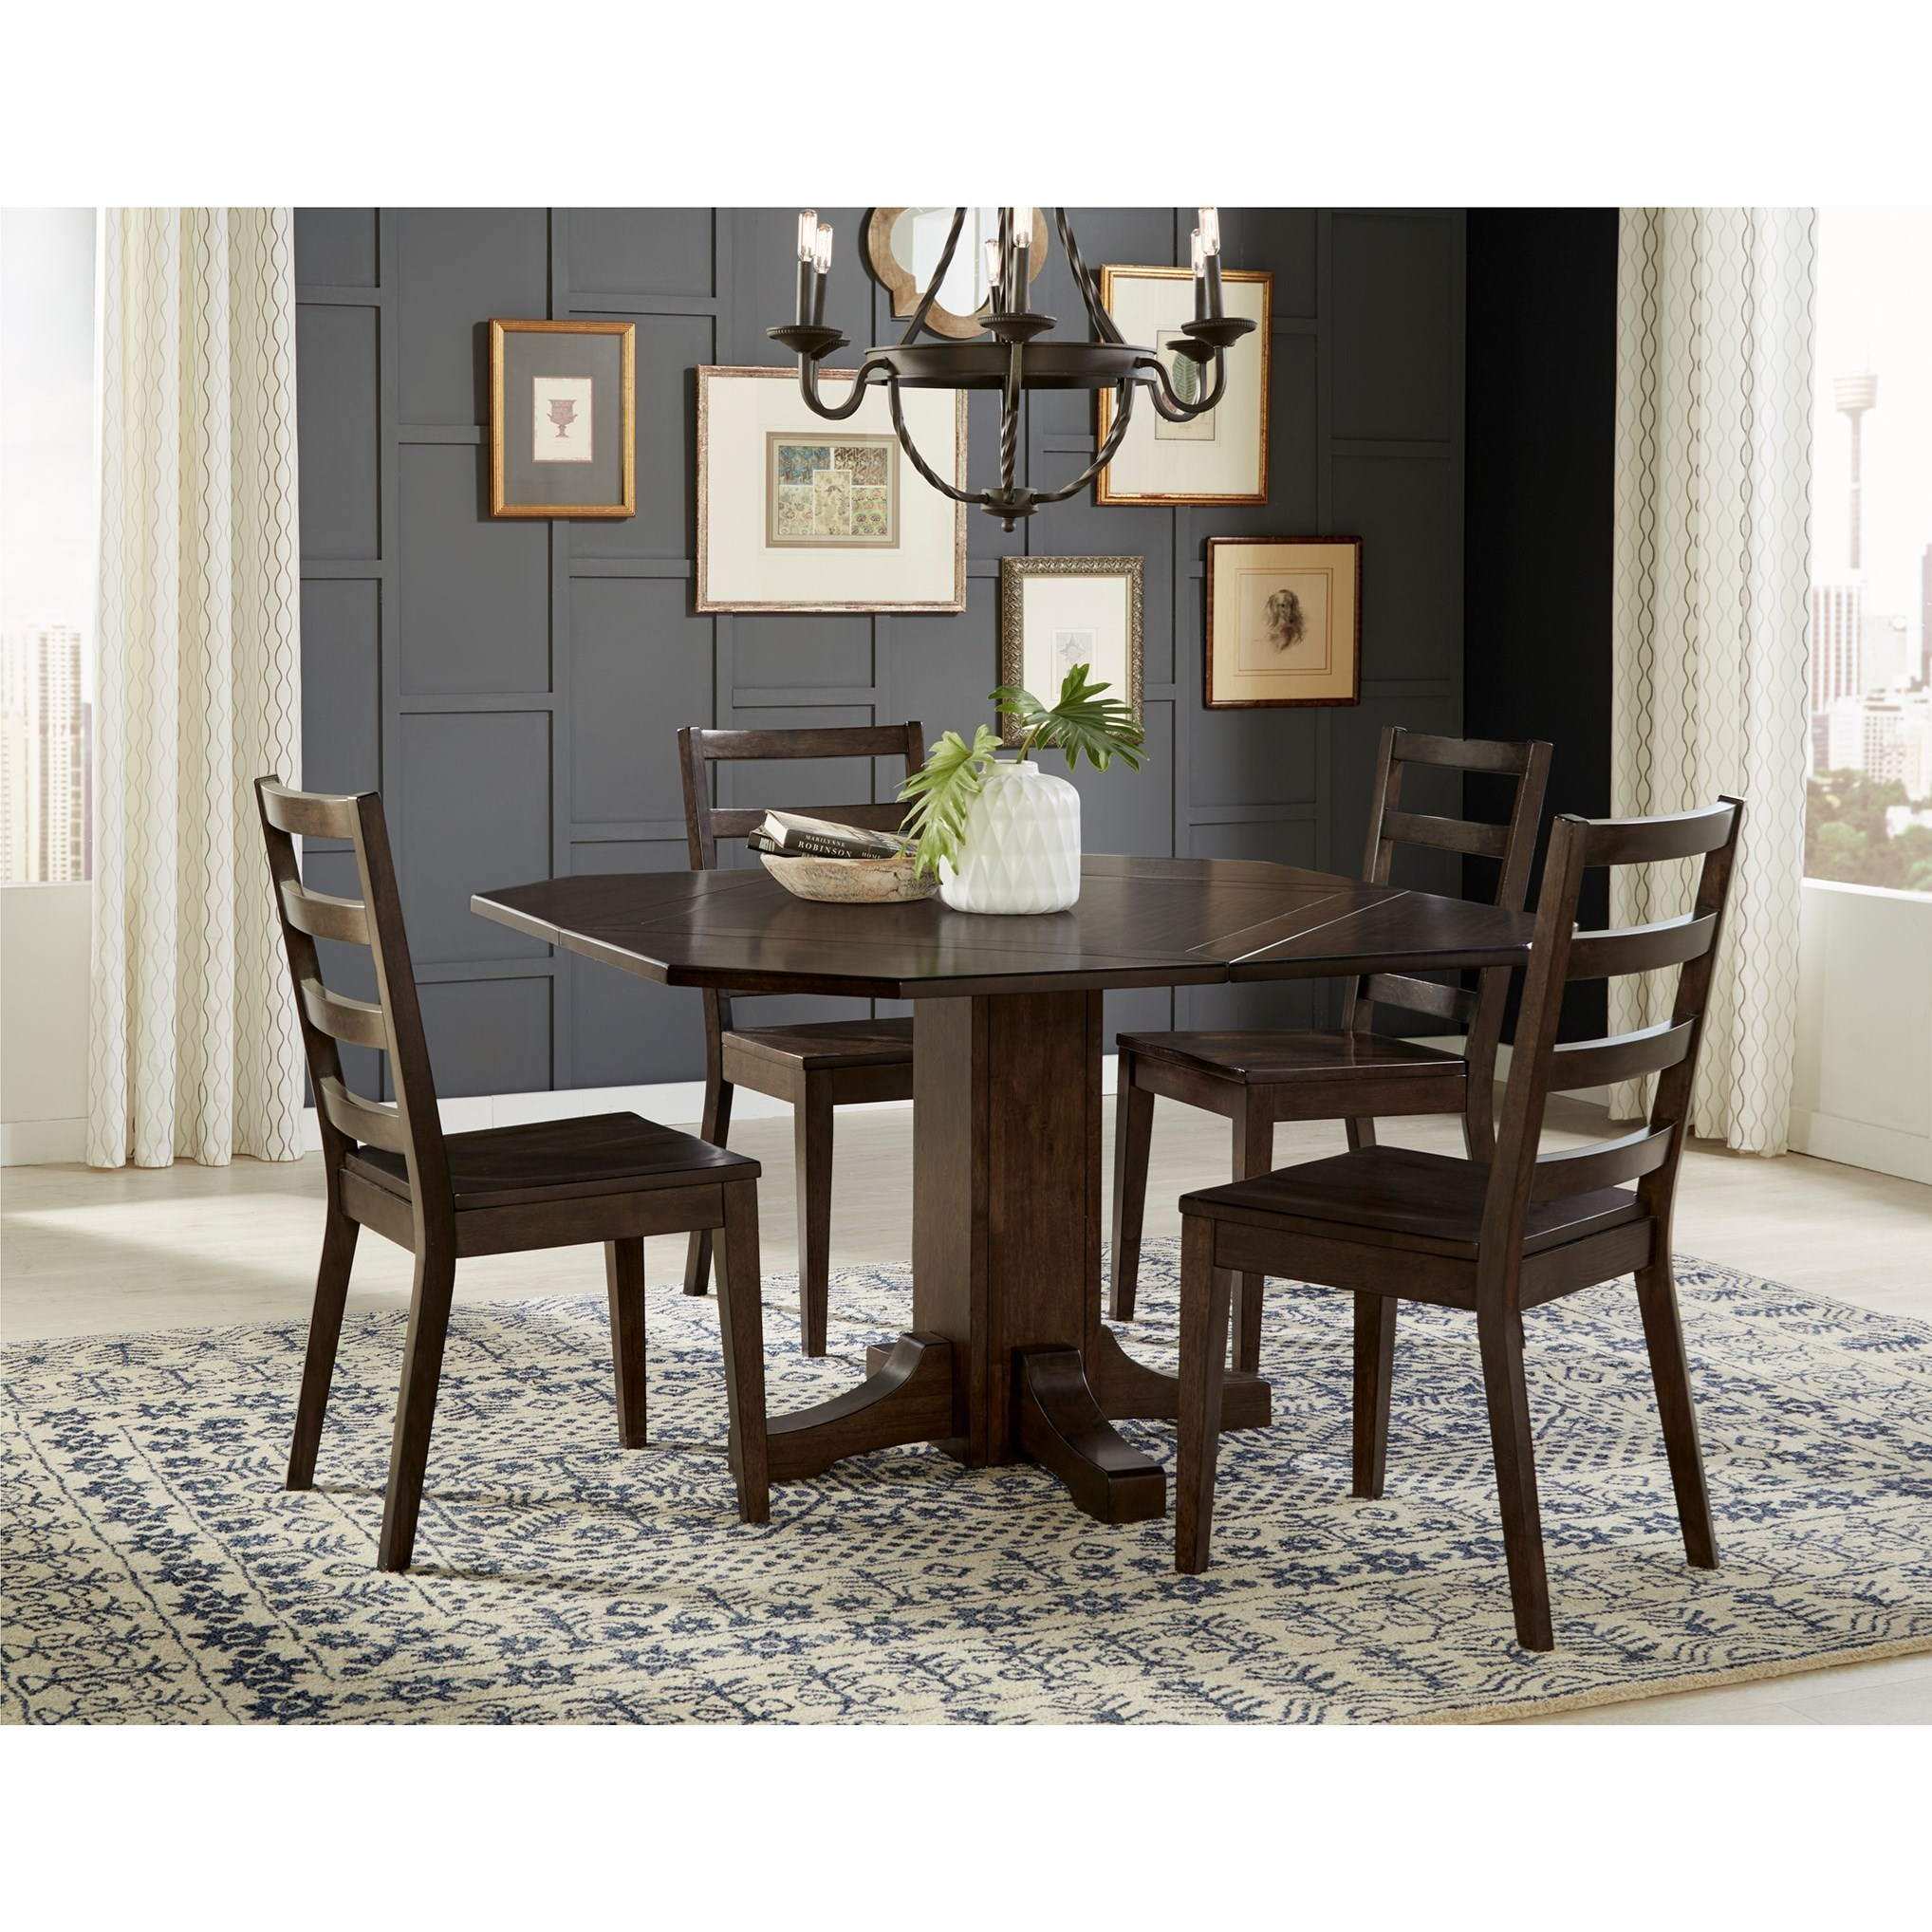 5 Piece Drop Leaf Dining Set